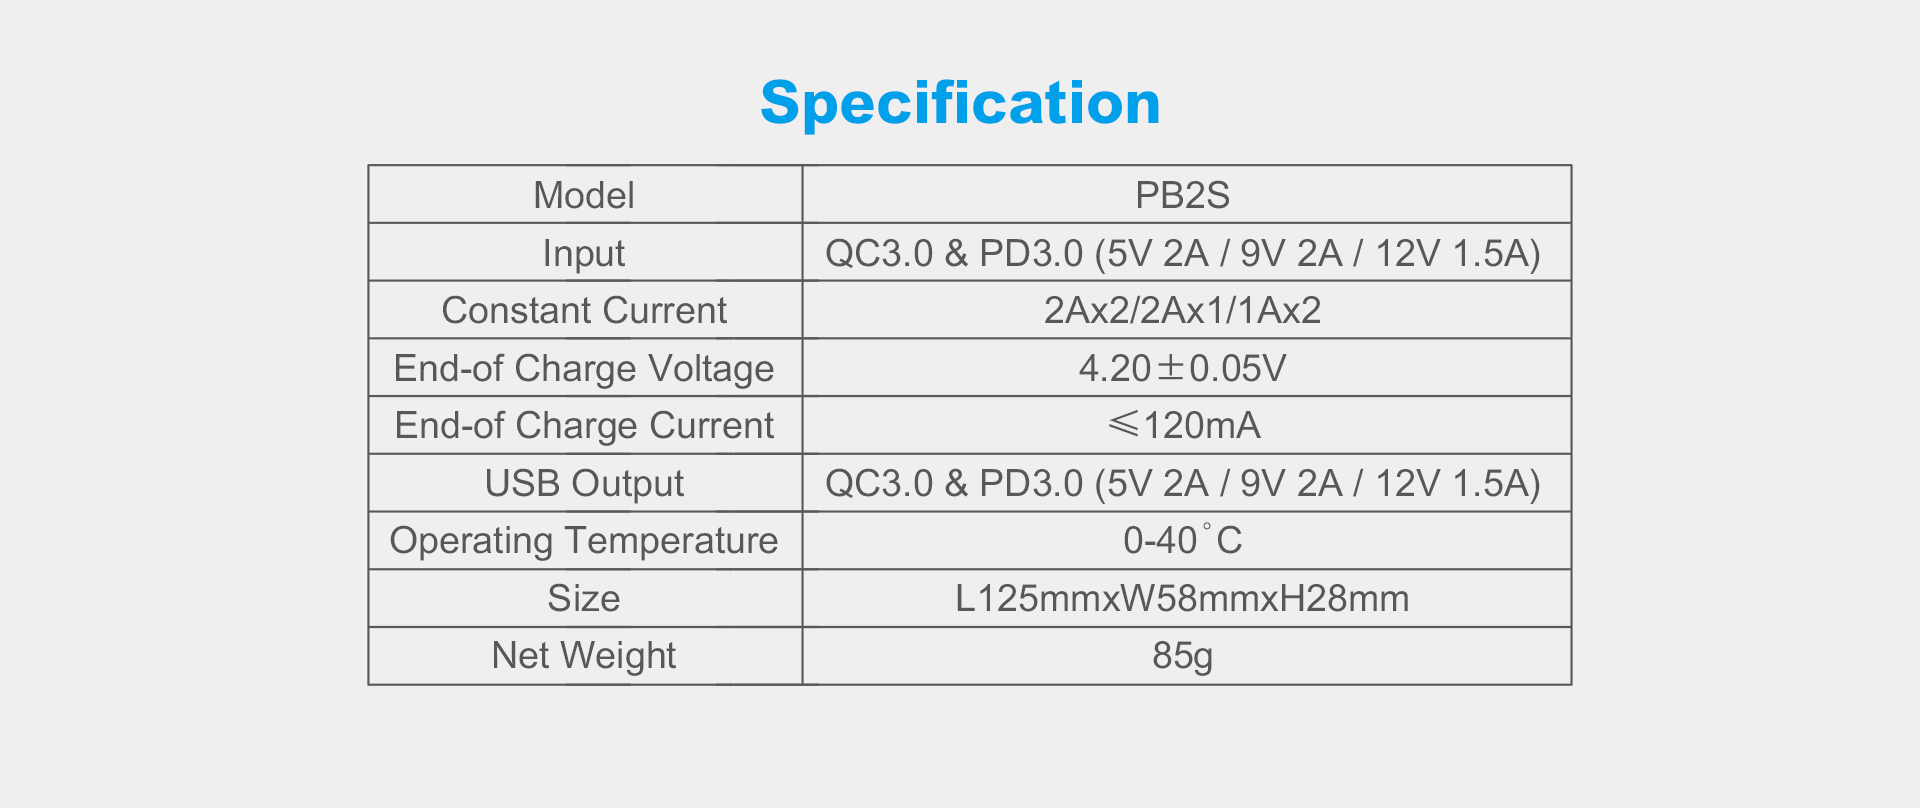 PB2s Powerbank Charger Specification